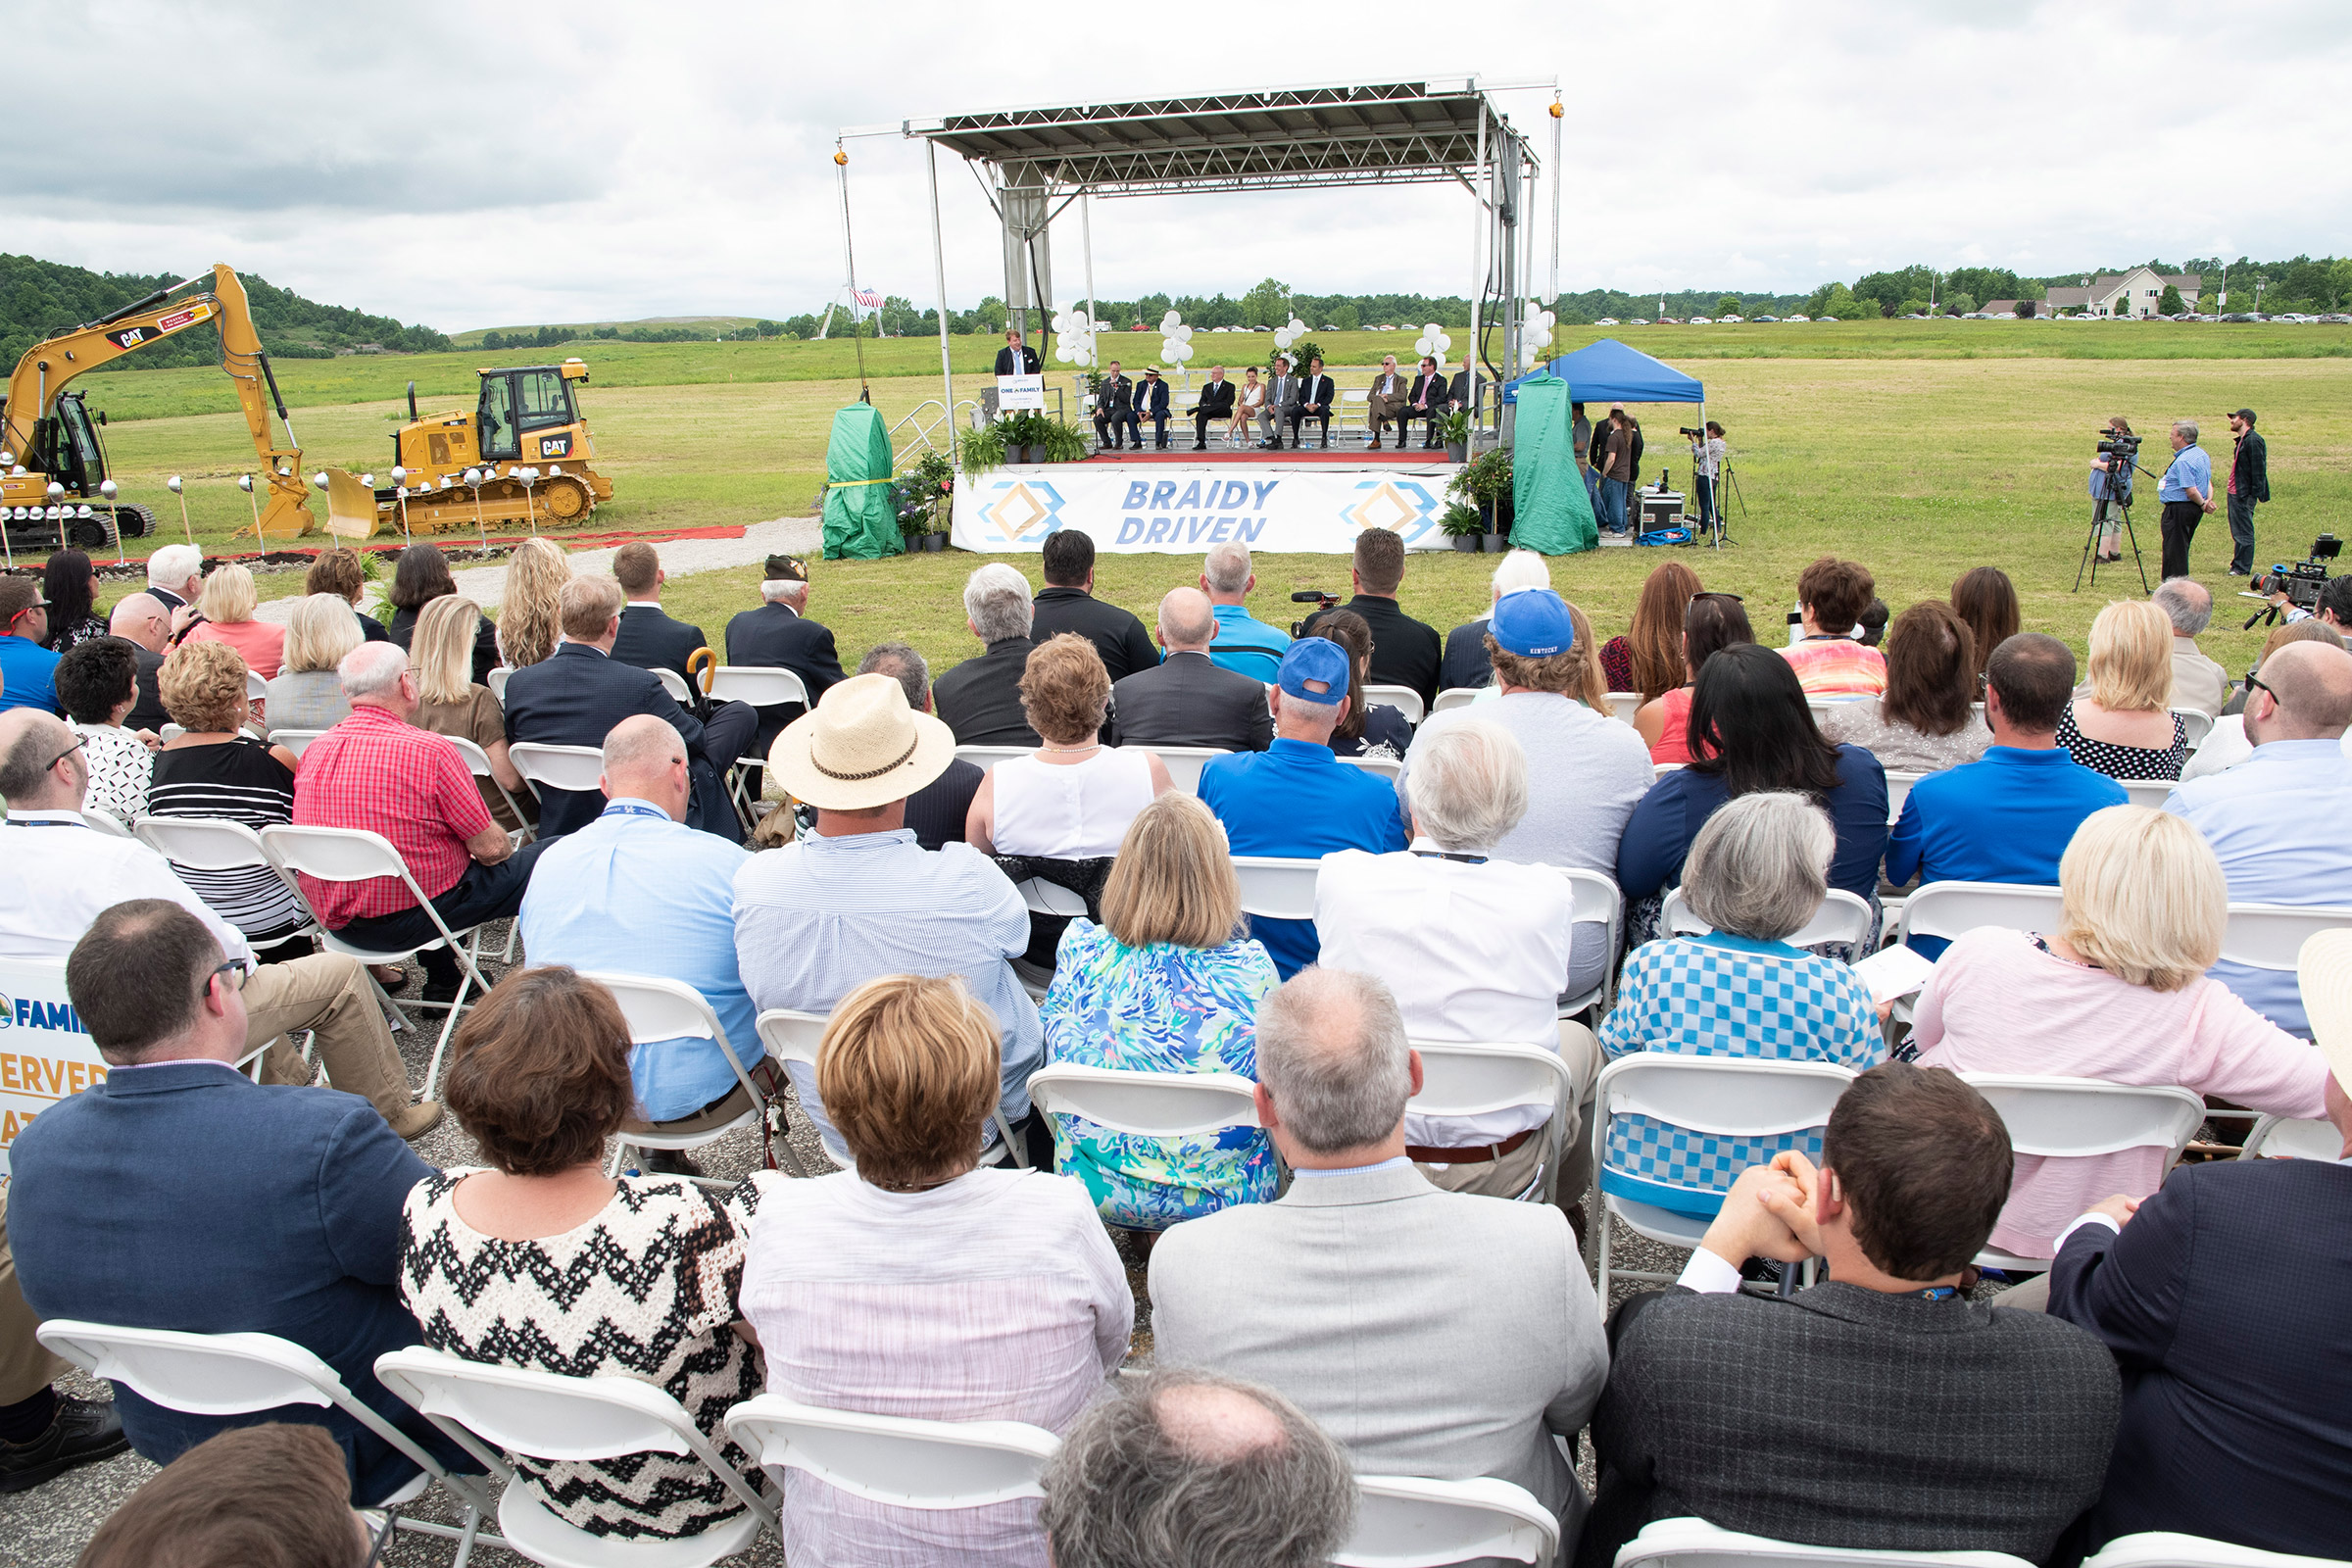 A crowd gathers at the groundbreaking for the new Braidy aluminum plant on June 1, 2018